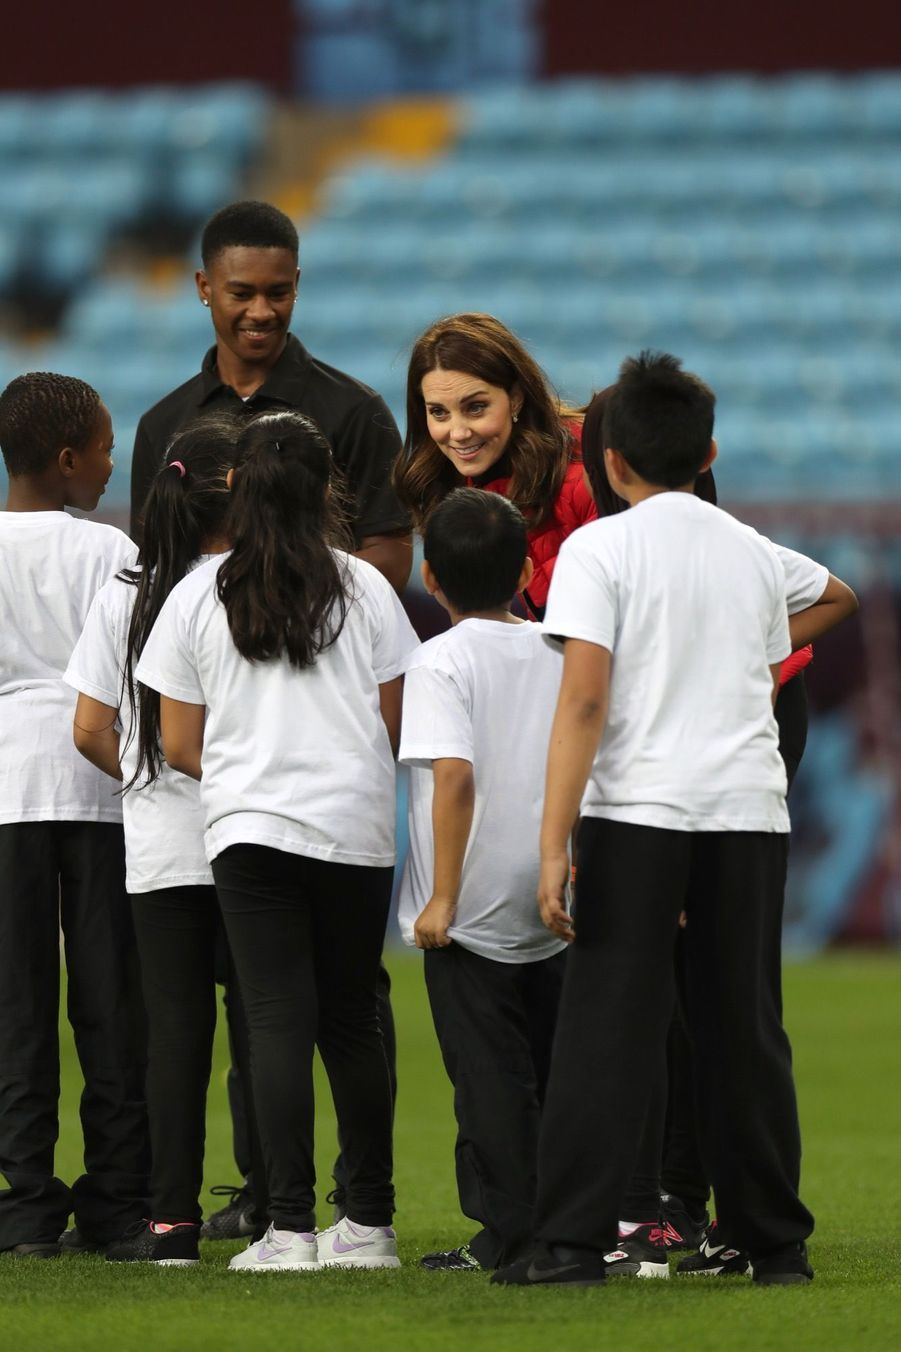 Kate Middleton Et Le Prince William Au Stade Du Club D'Aston Villa 11